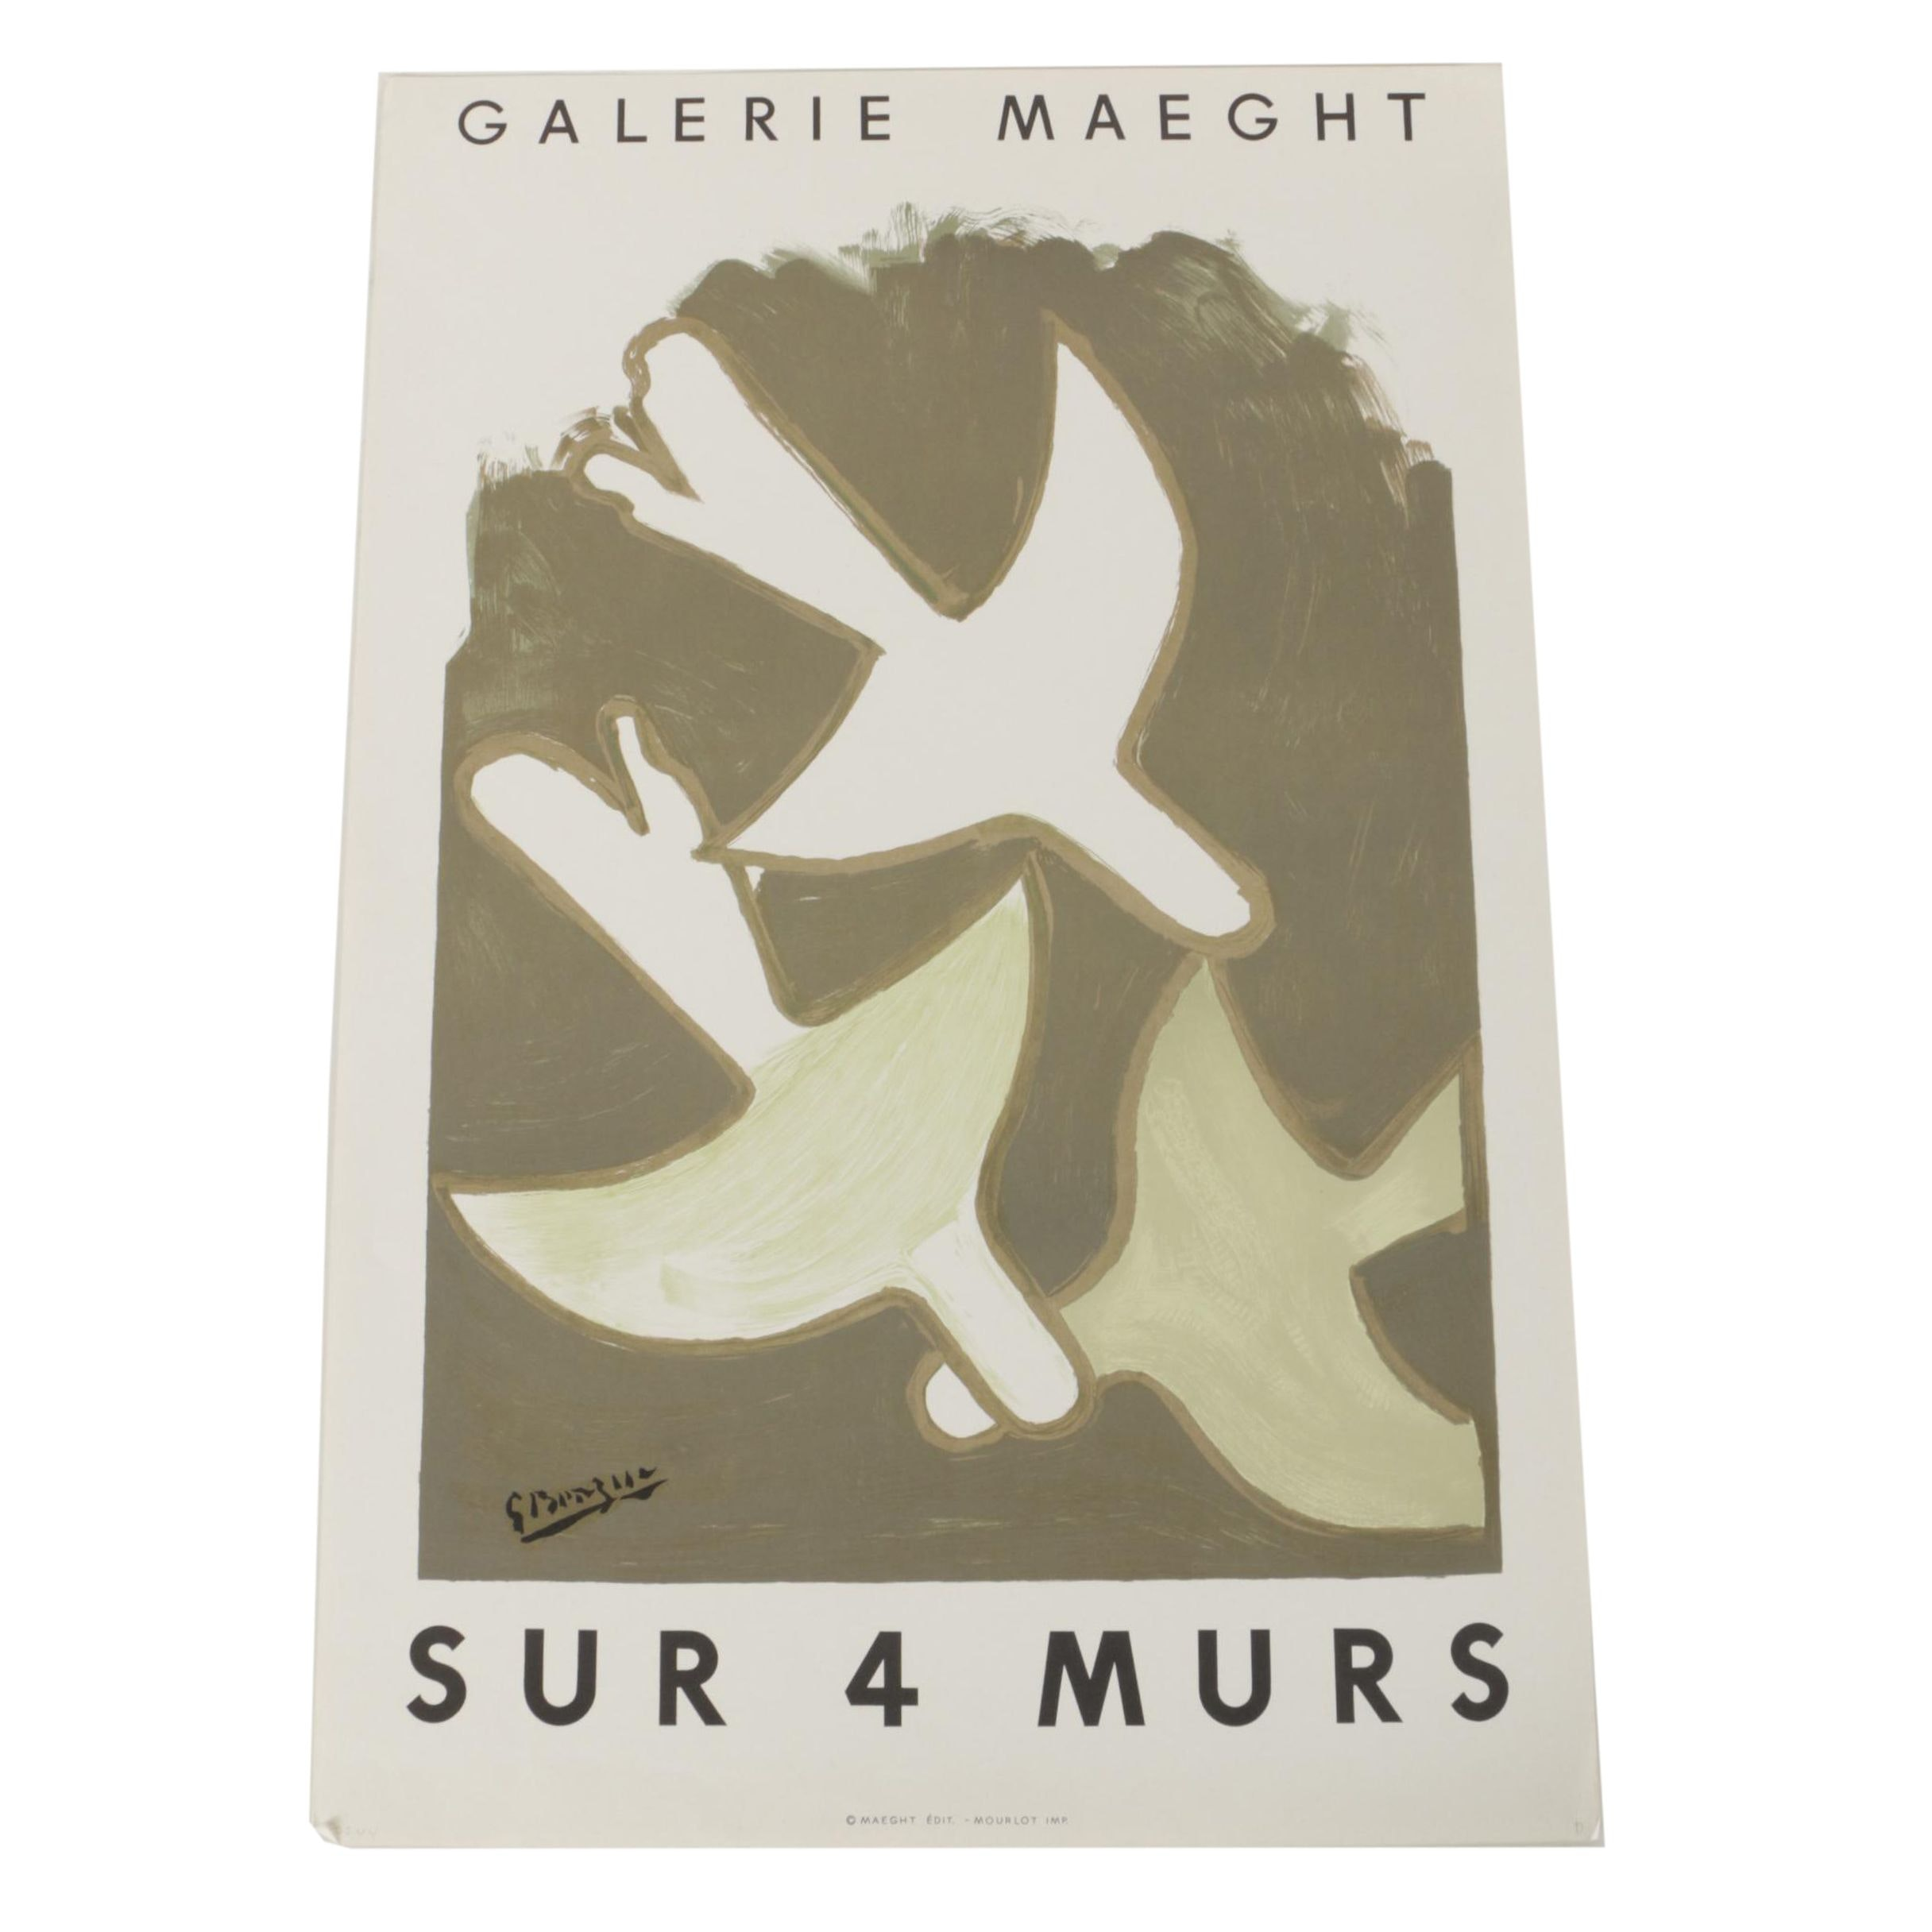 Lithograph Poster Designed by Georges Braque for Galerie Maeght Exhibition